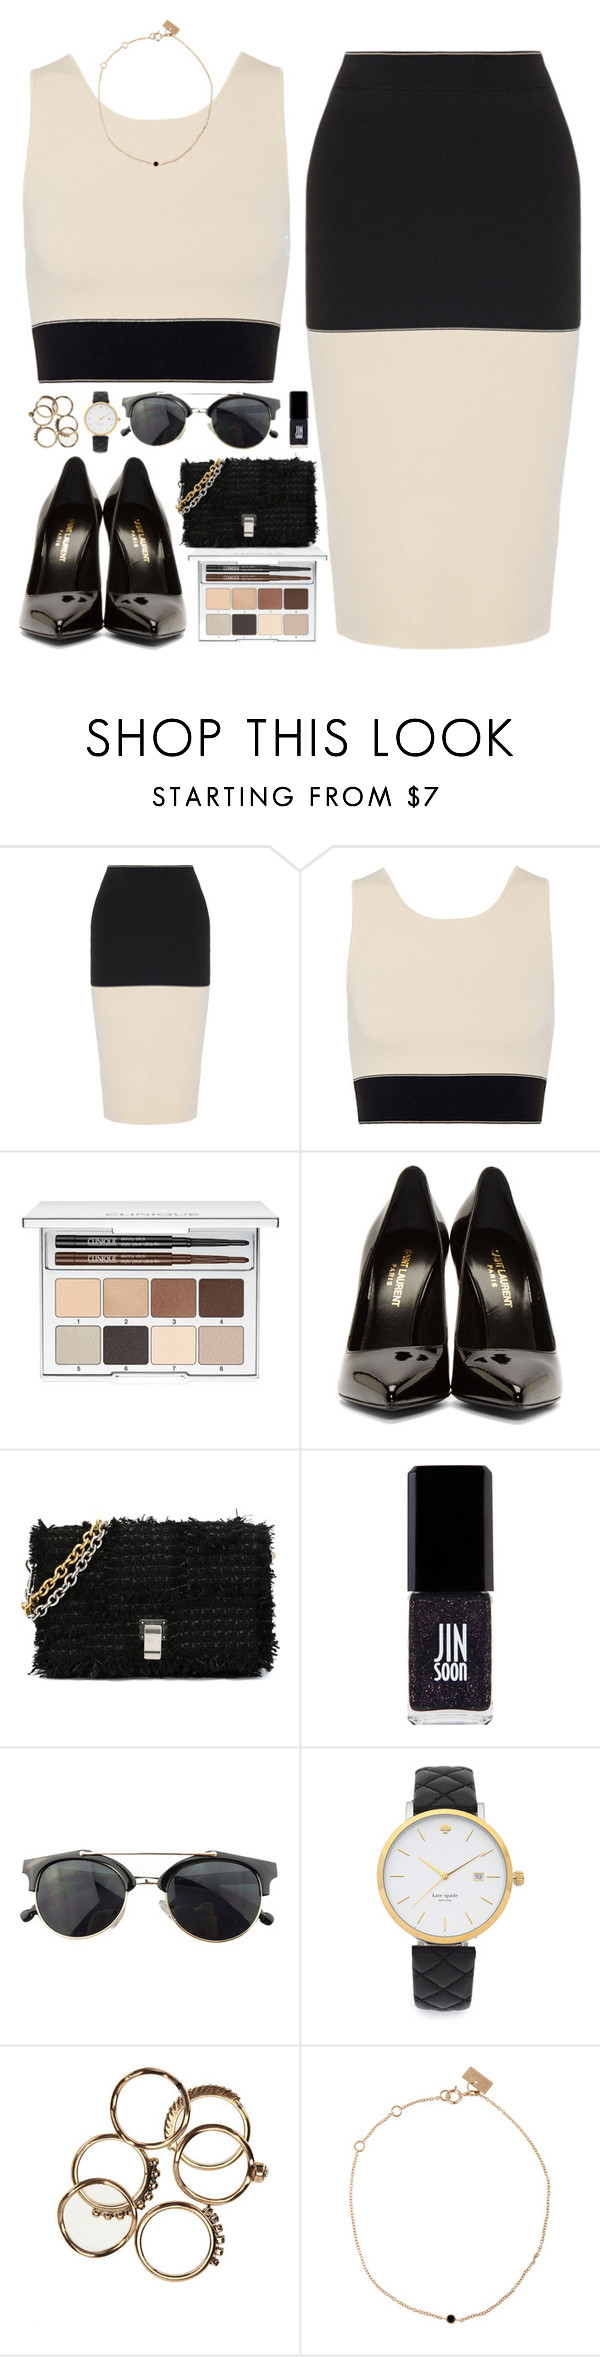 """Meet me on the Equinox"" by sharinganjea ❤ liked on Polyvore featuring rag & bone, Clinique, Yves Saint Laurent, Proenza Schouler, Jin Soon, Chicnova Fashion, Kate Spade and VANRYCKE"